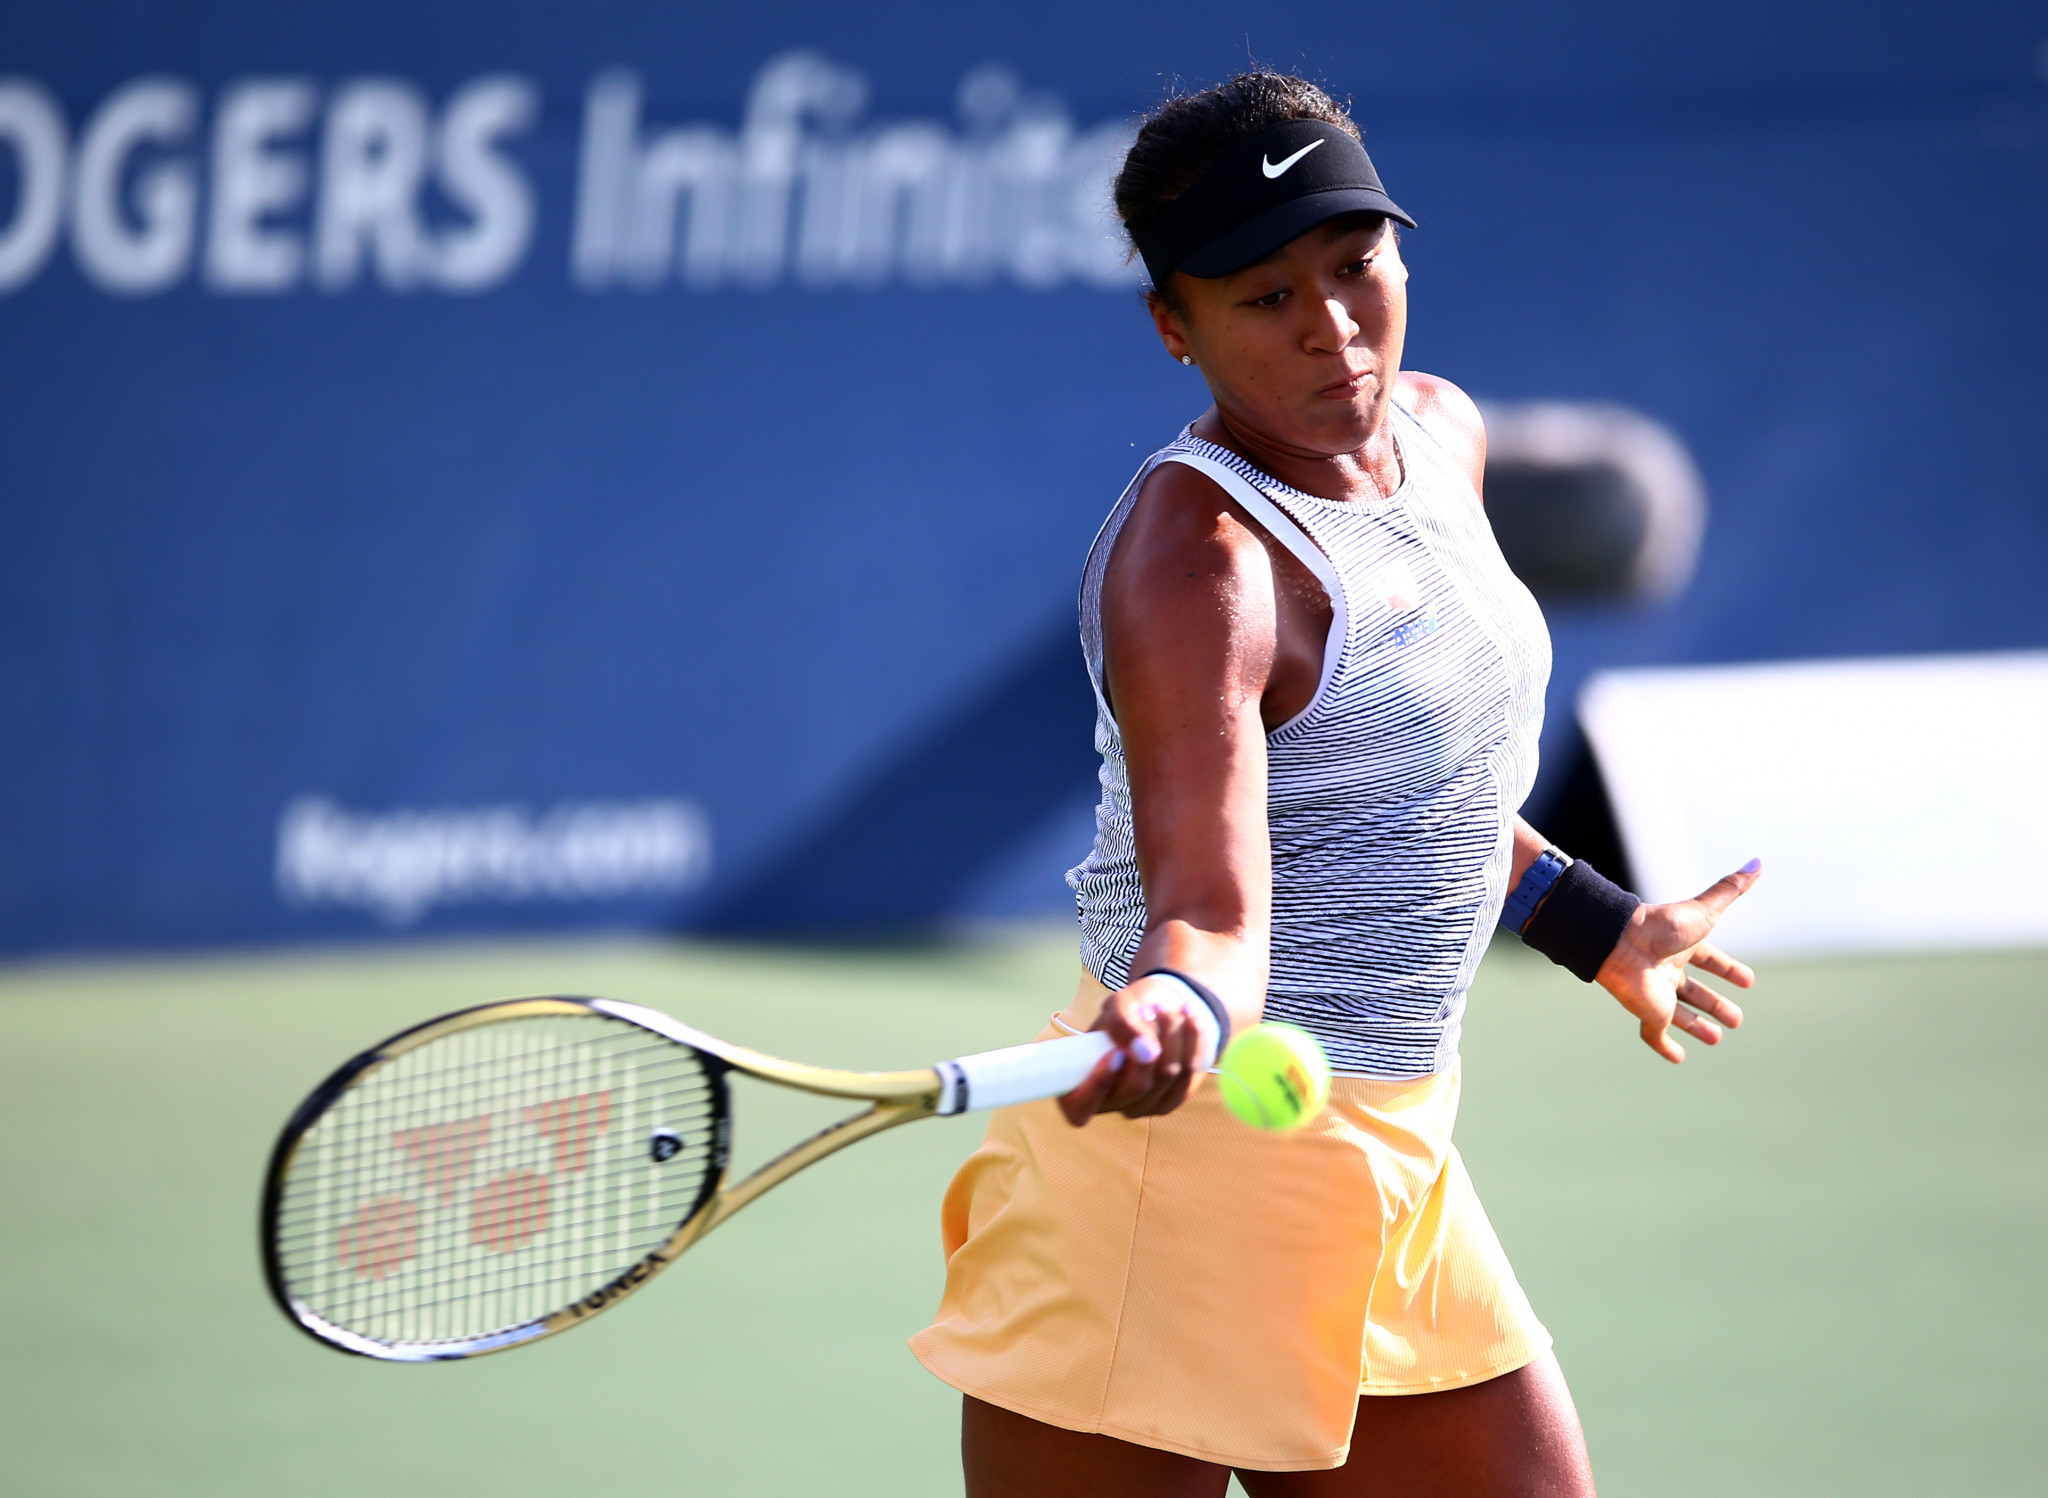 Barty loses world number one ranking as Osaka wins at Rogers Cup